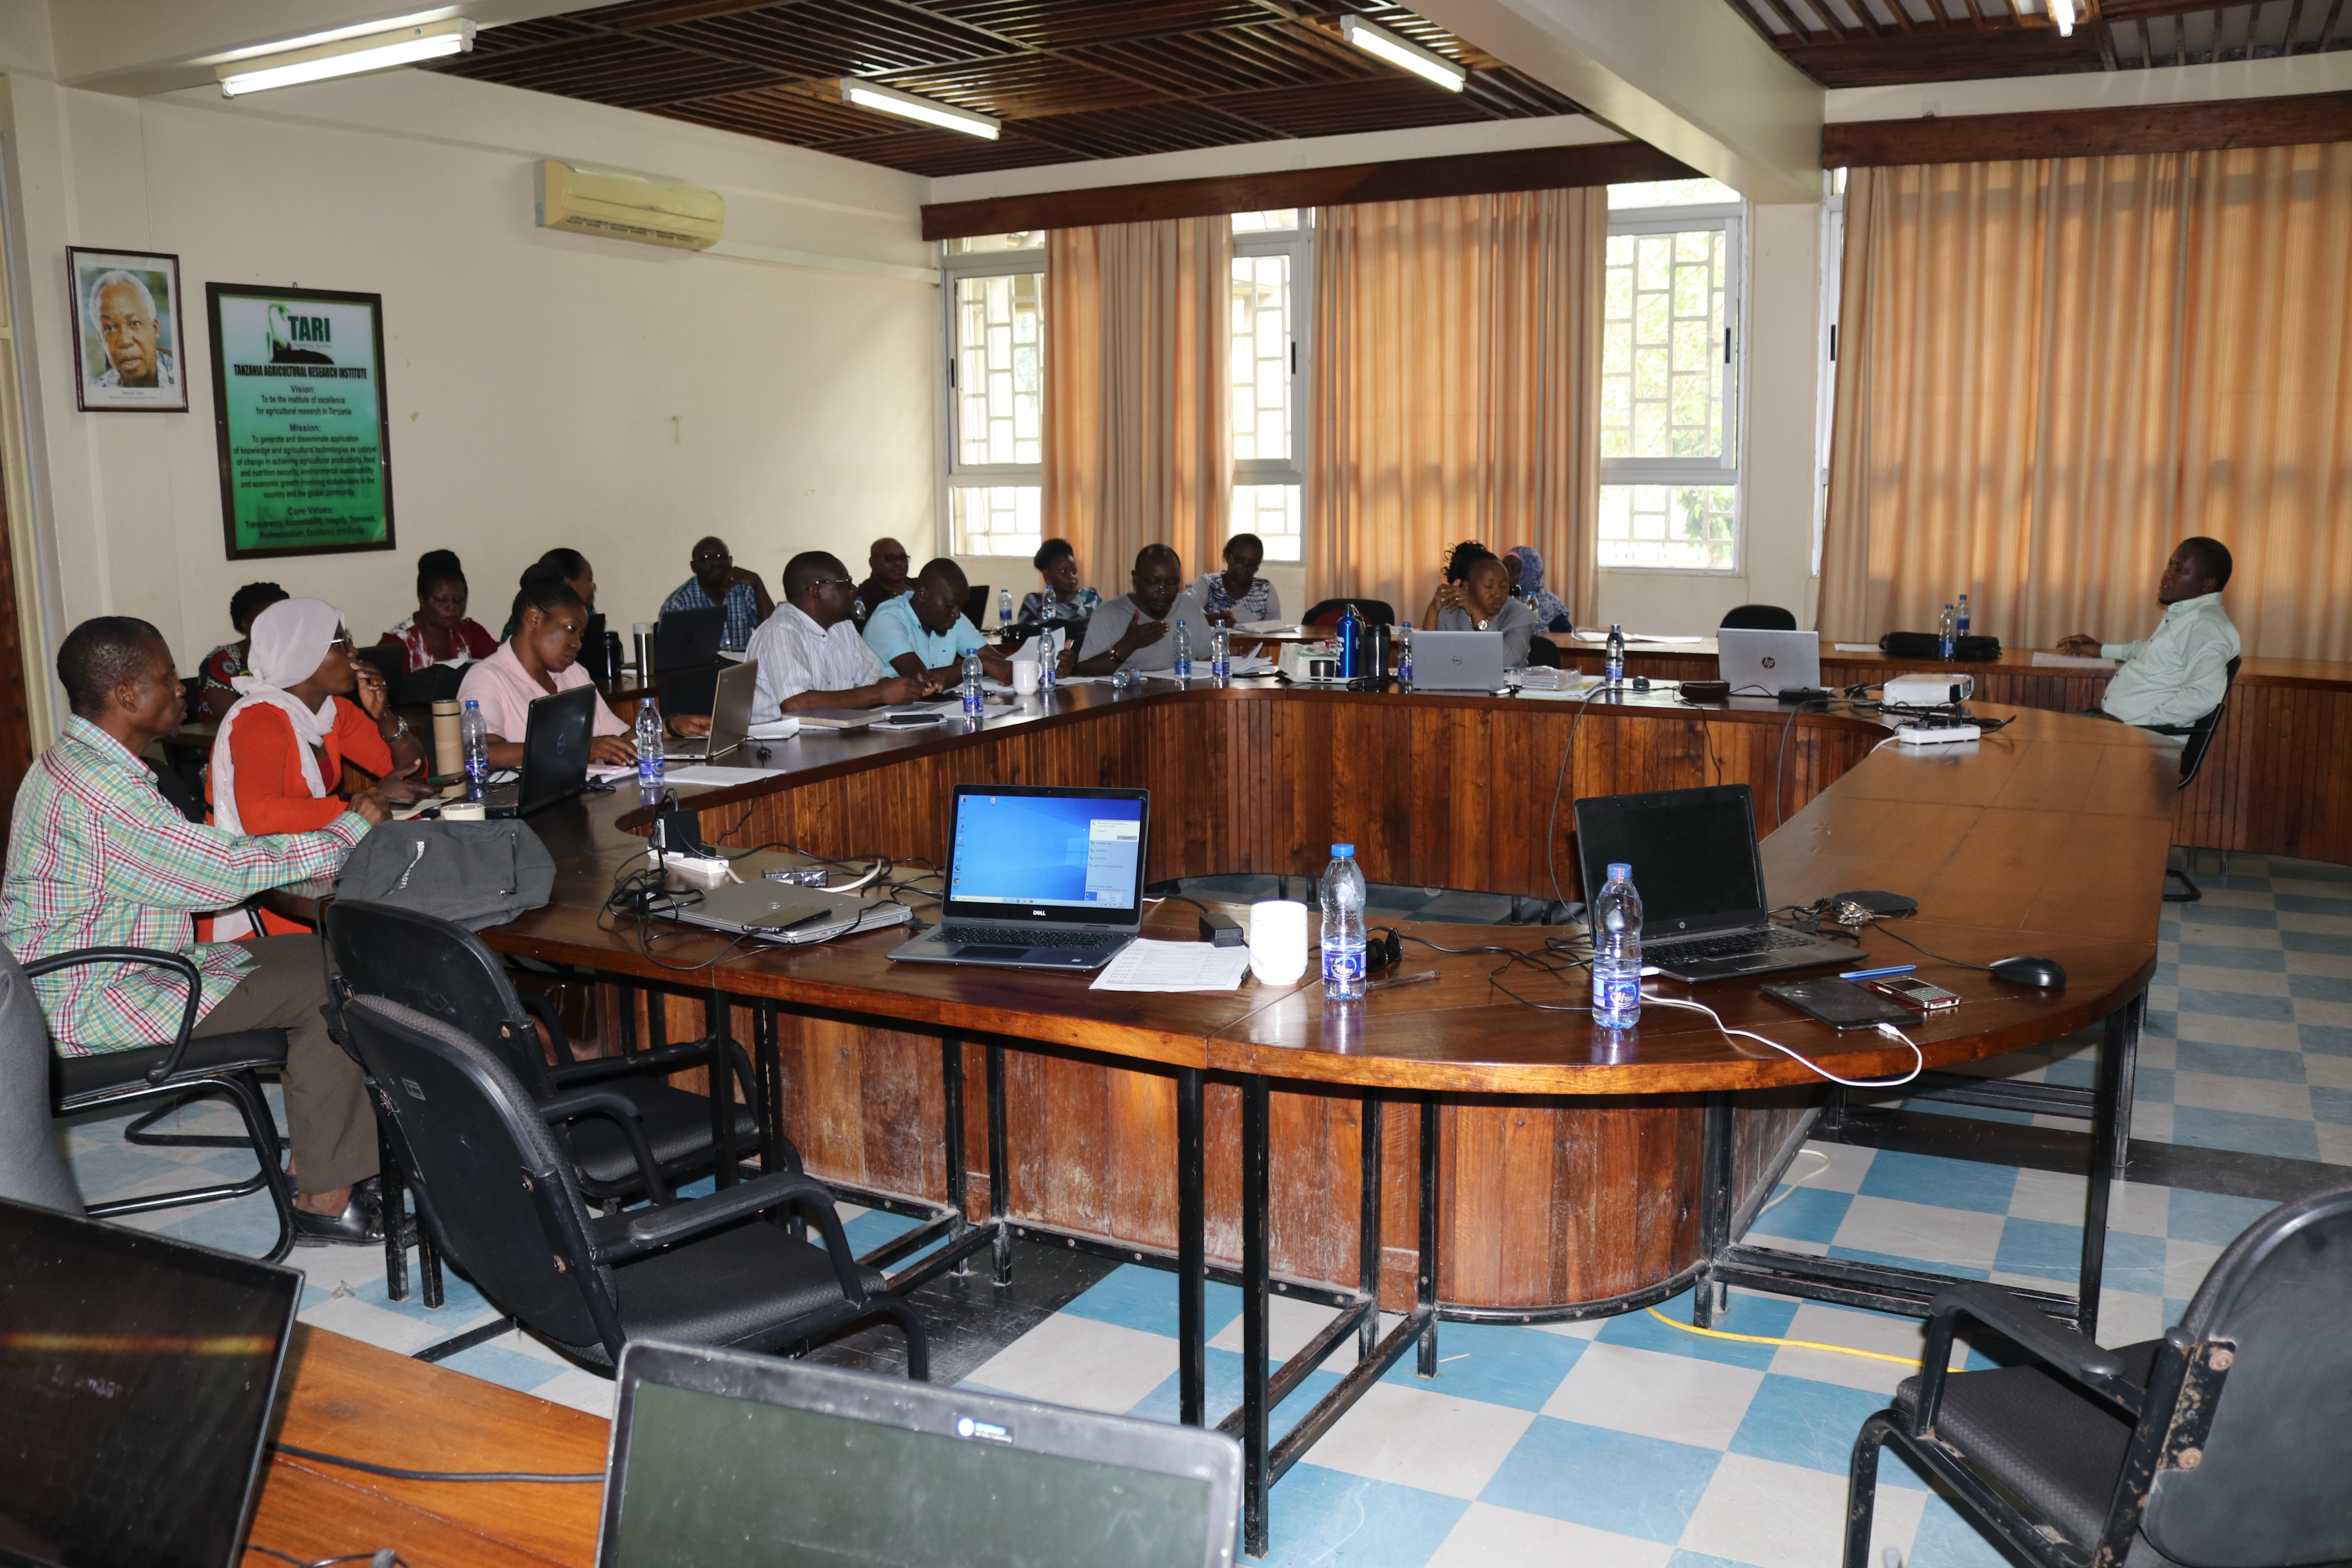 The sugarcane coordinator invited sugarcane estates, agronomists, for a discussion on new proposed projects with TARI Kibaha scientists